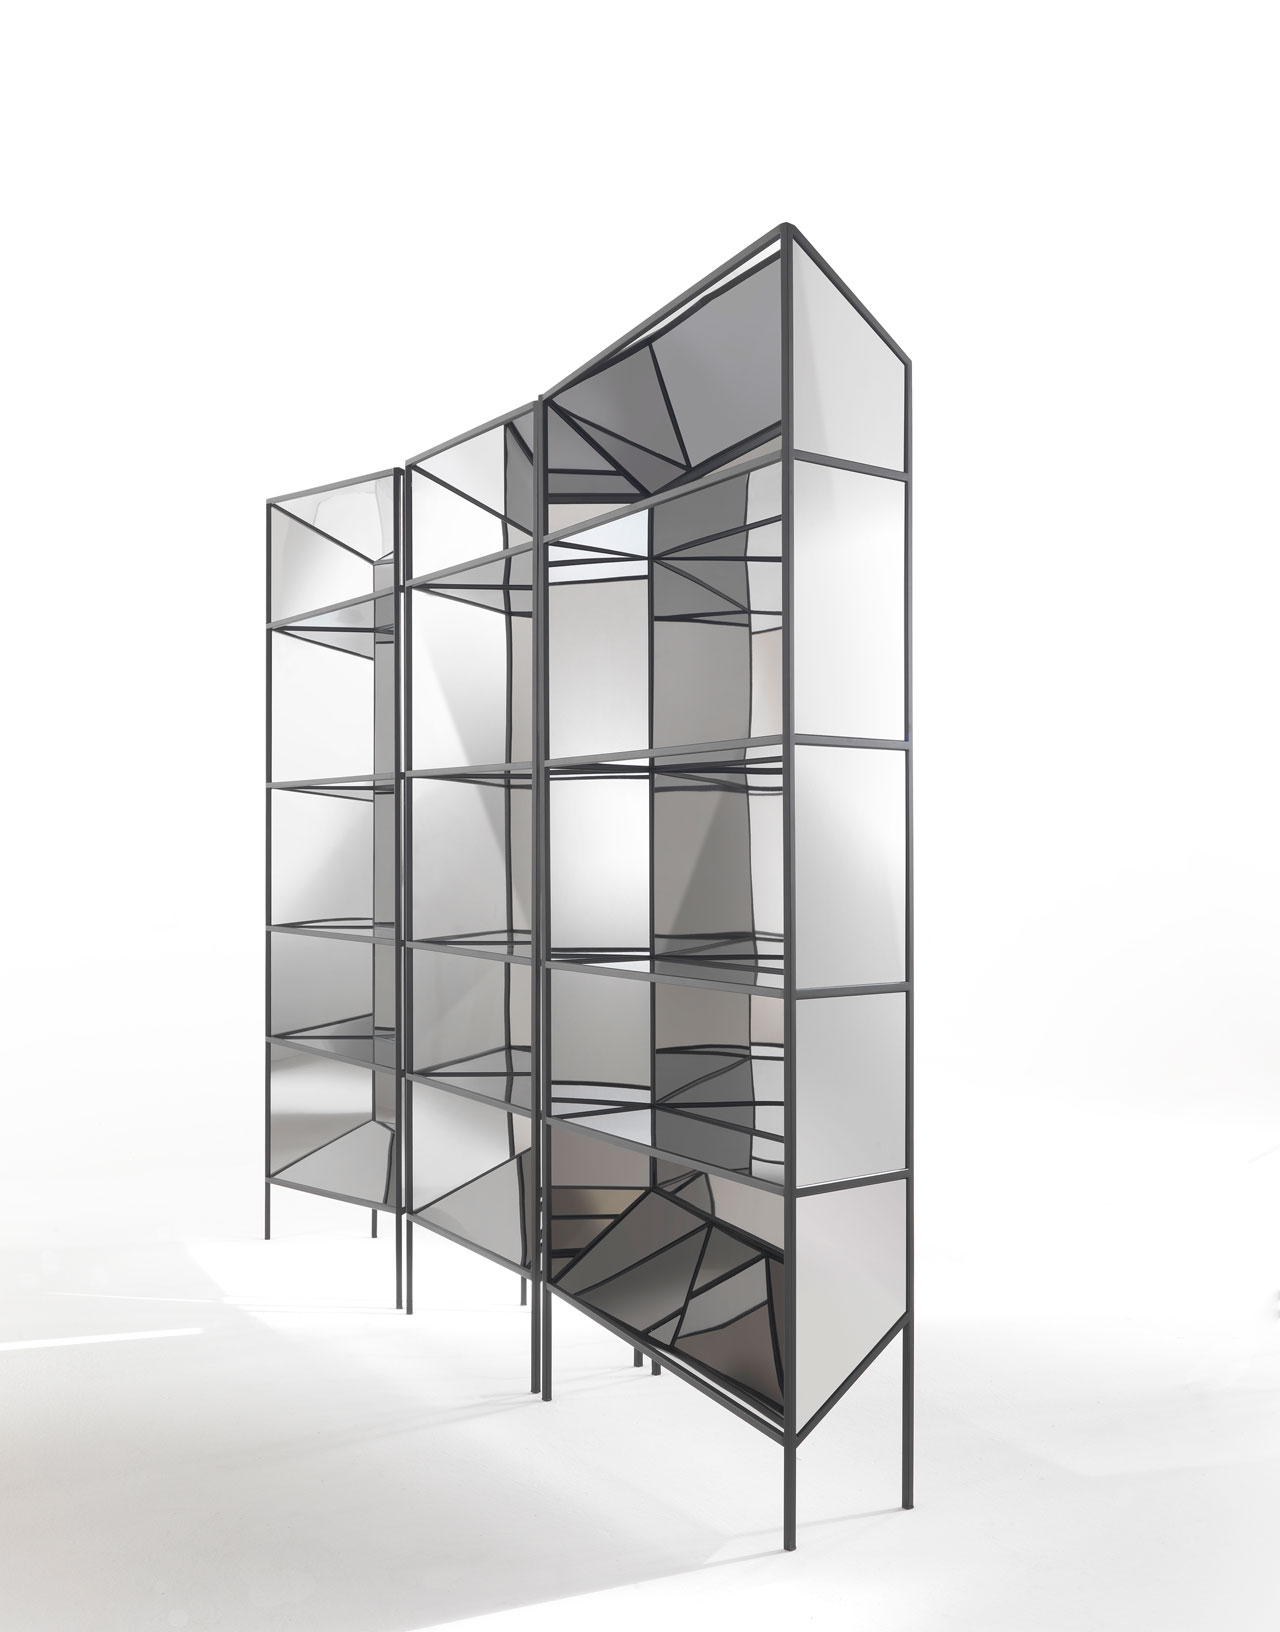 PERFLECT display cabinet by Sam Baronfor JCP Universe.Materials: metal structure in grained black finish with super mirror steel panels.Dimensions (H x W x D): 200cm x 78cm x 30cm – central unit & 210cm x 110cm x 30cm – side units.PhotobySilvio Macchi© JCP Universe.